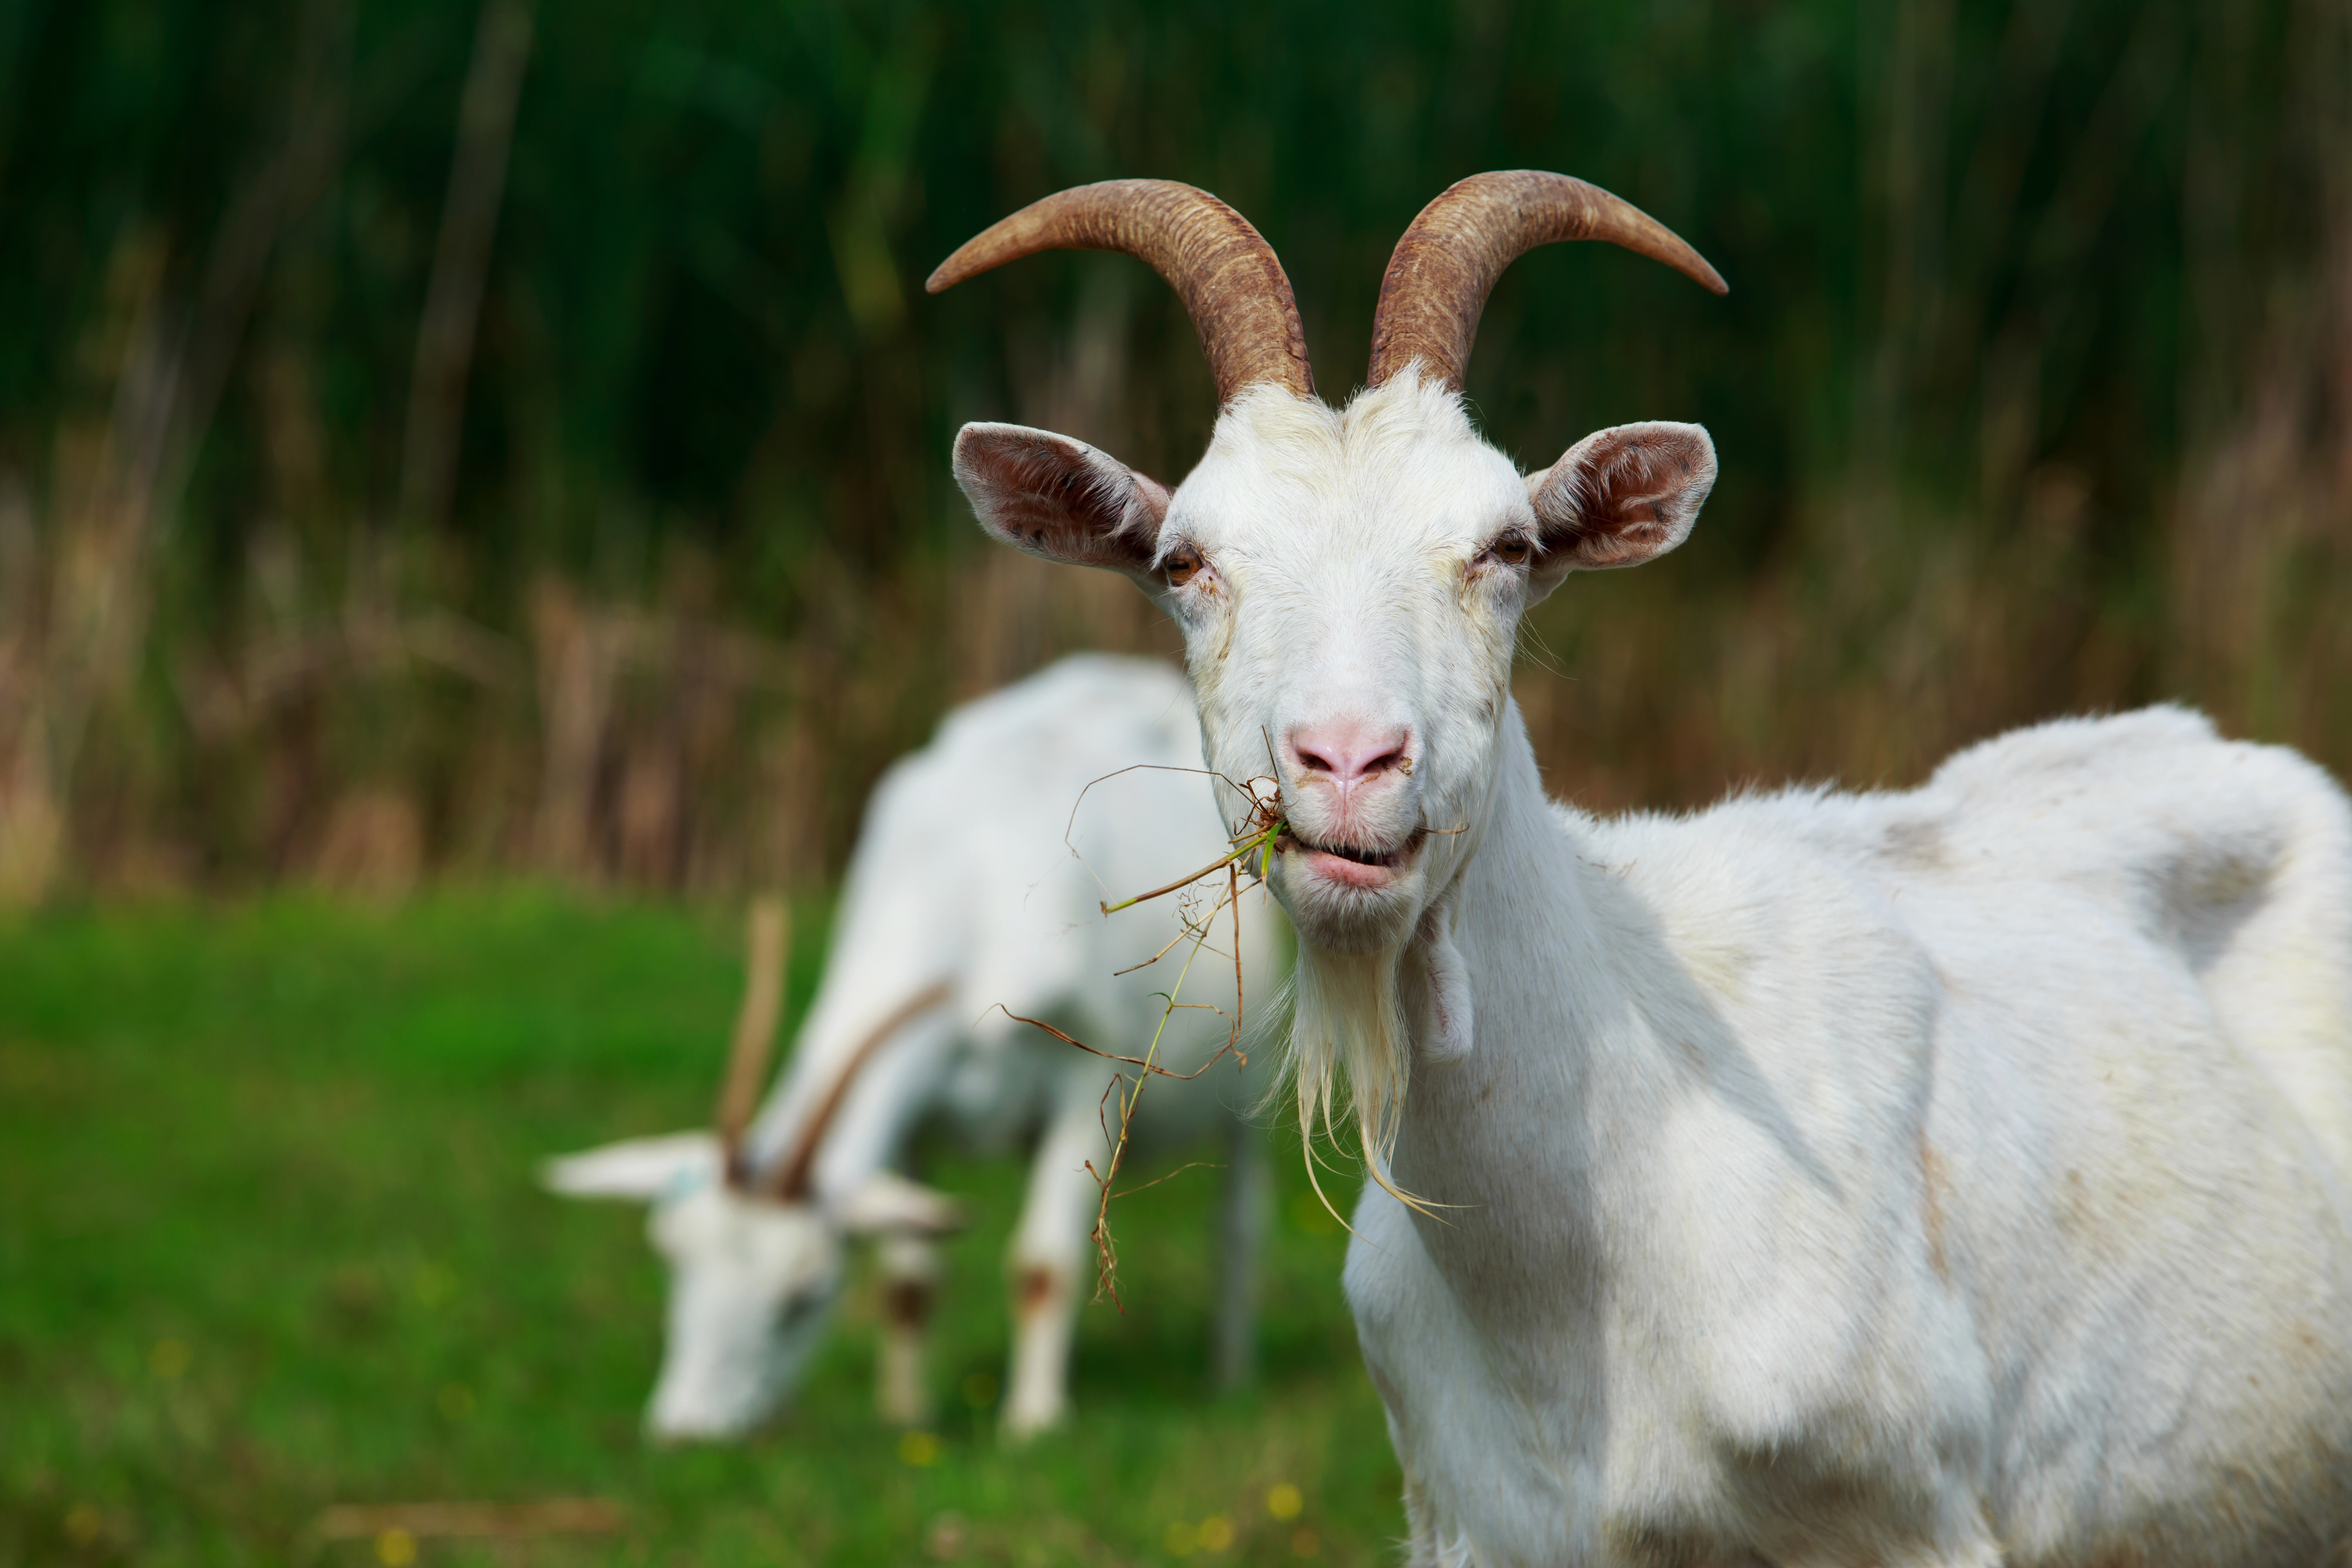 Environmentally Friendly and Adorable: Landscaping with Goats